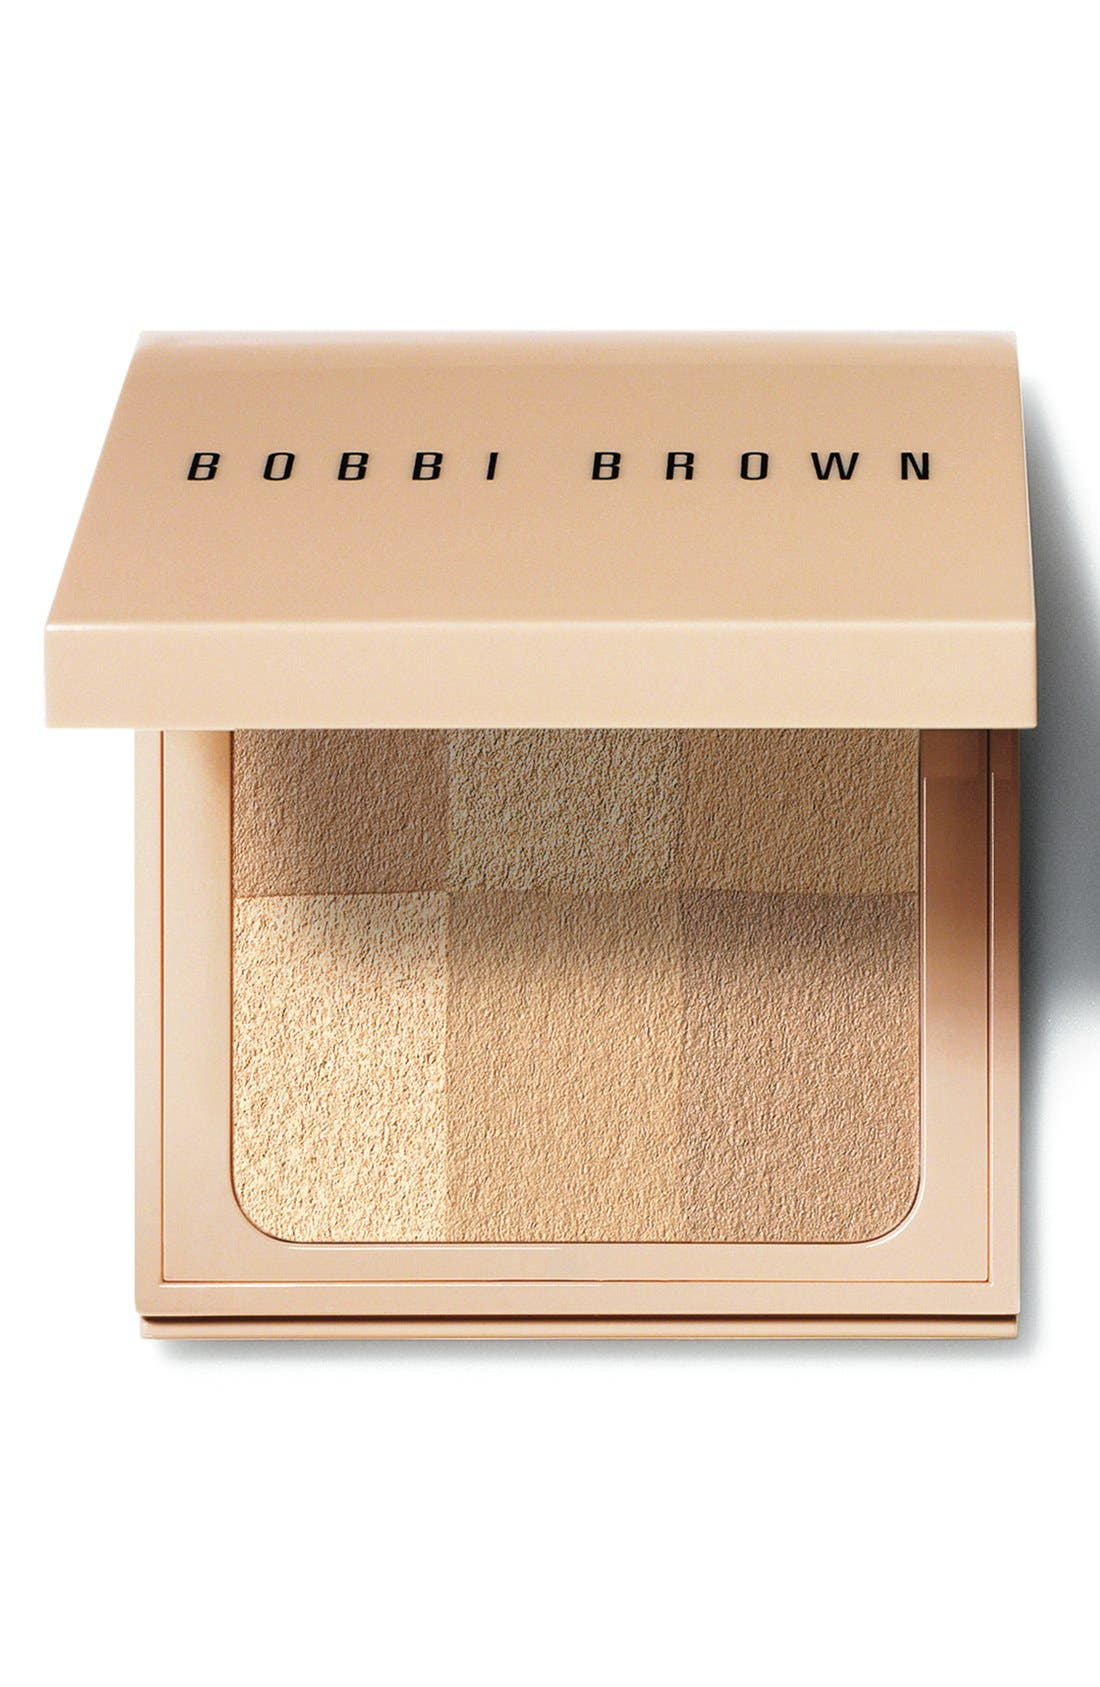 Bobbi Brown 'Nude Finish' Illuminating Powder